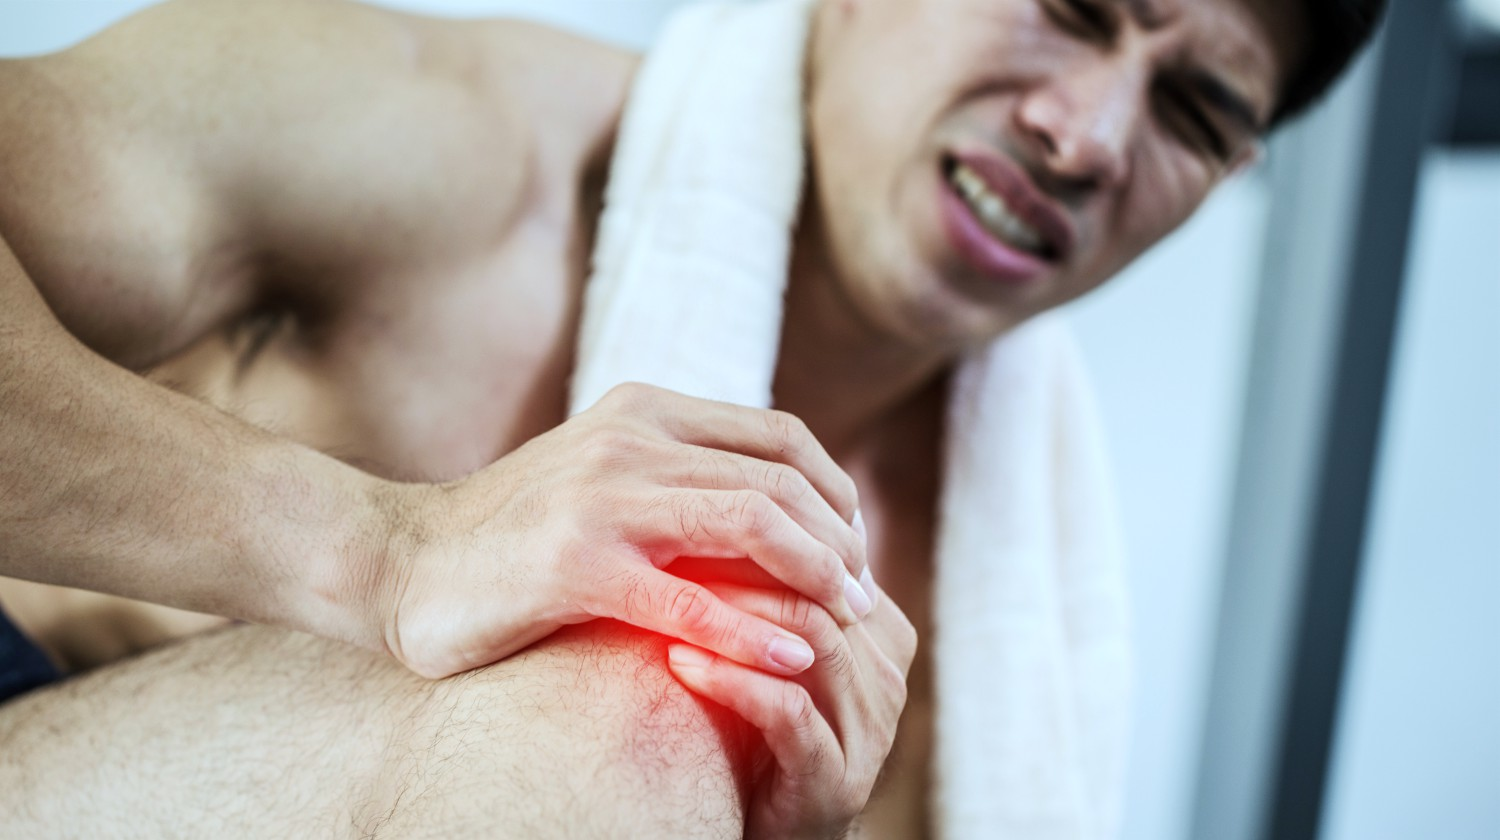 Feature | asian man injury kneecap | How Lipopolysaccharide Contributes To Joint Pain | lps lipopolysaccharide